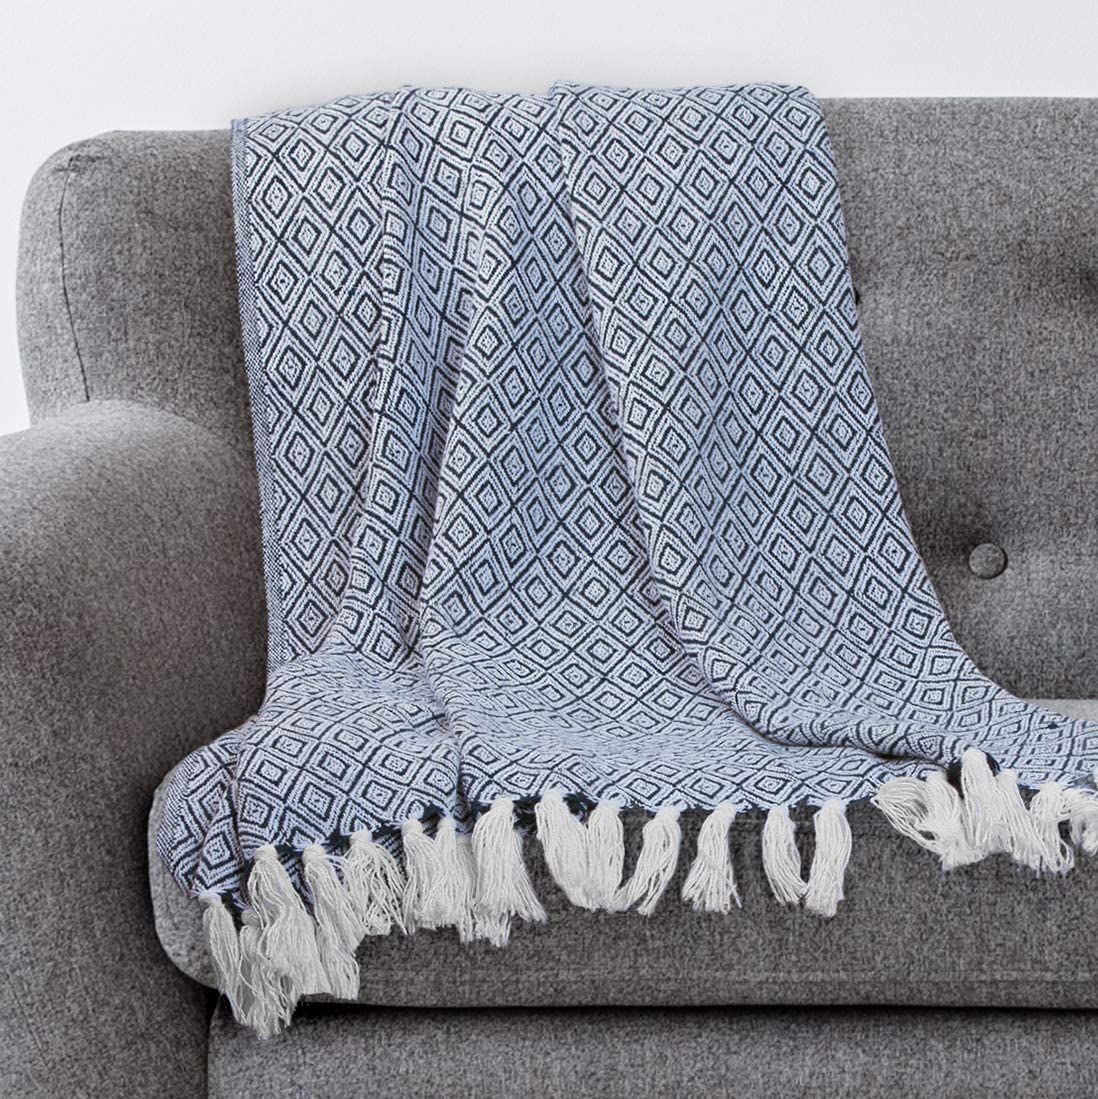 Americanflat Omala Throw Blanket in Navy and White